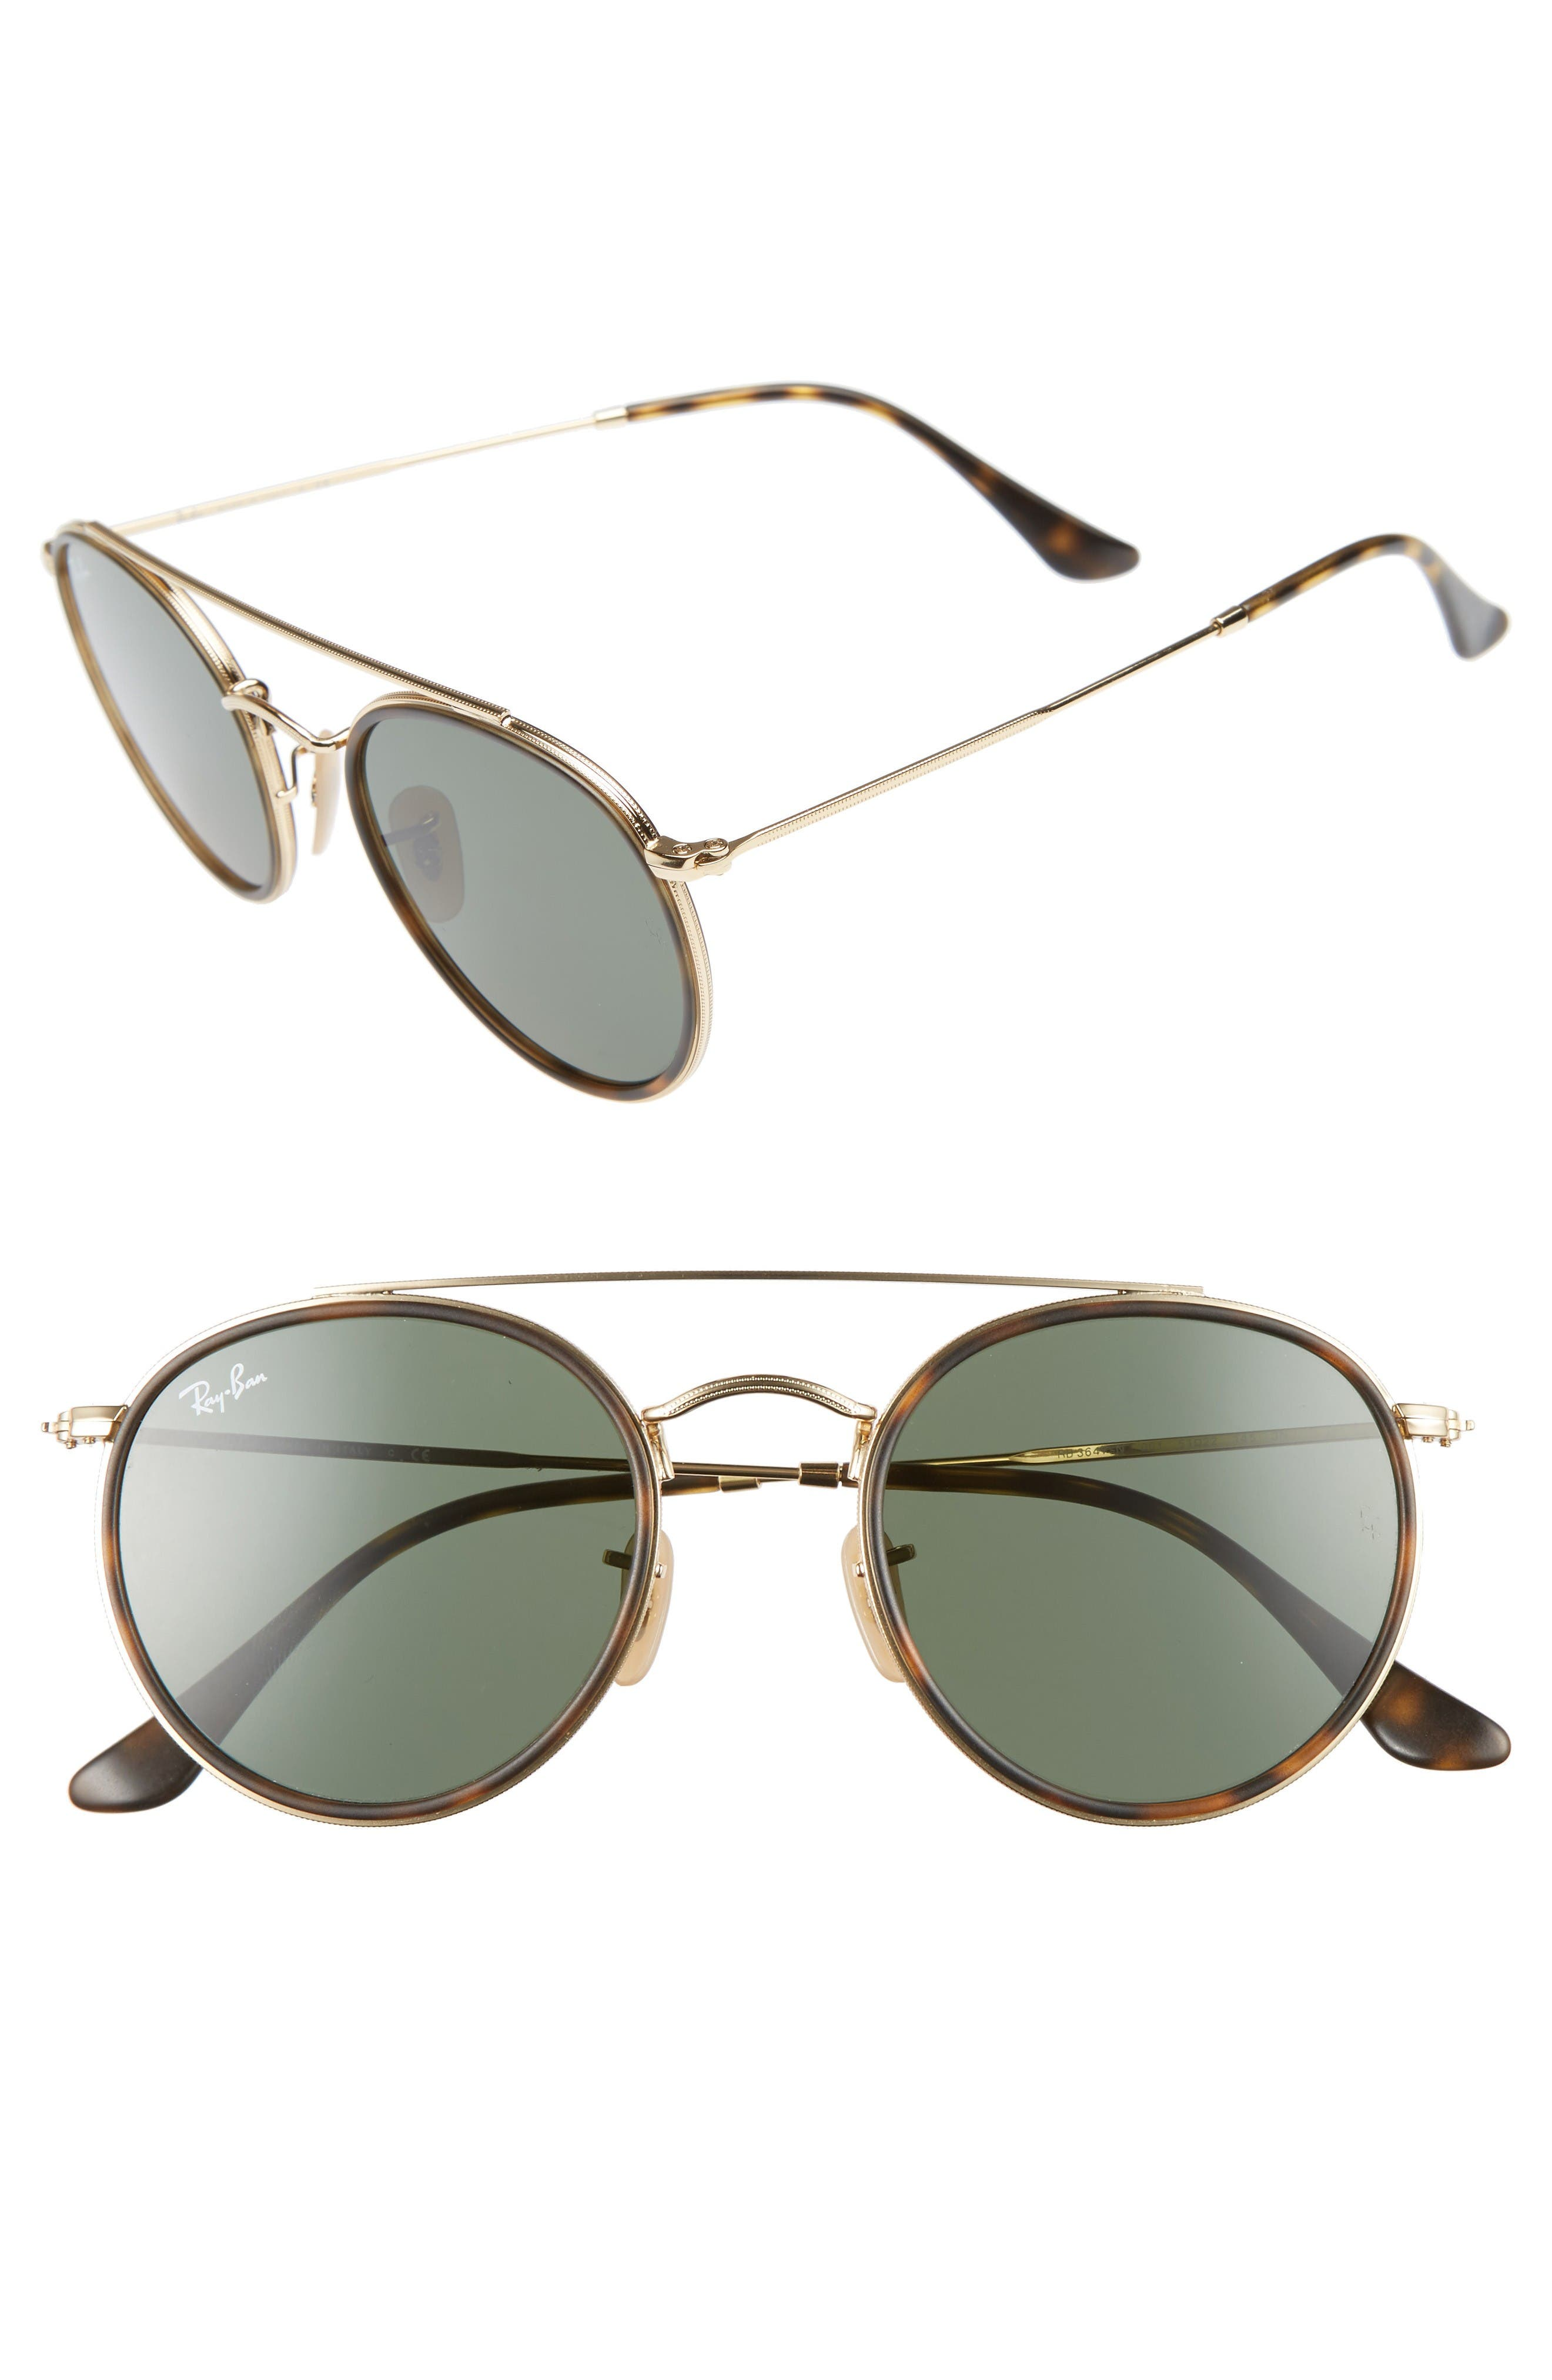 f579ca8041 ... coupon code main image ray ban 51mm aviator sunglasses 6fa70 c1b48